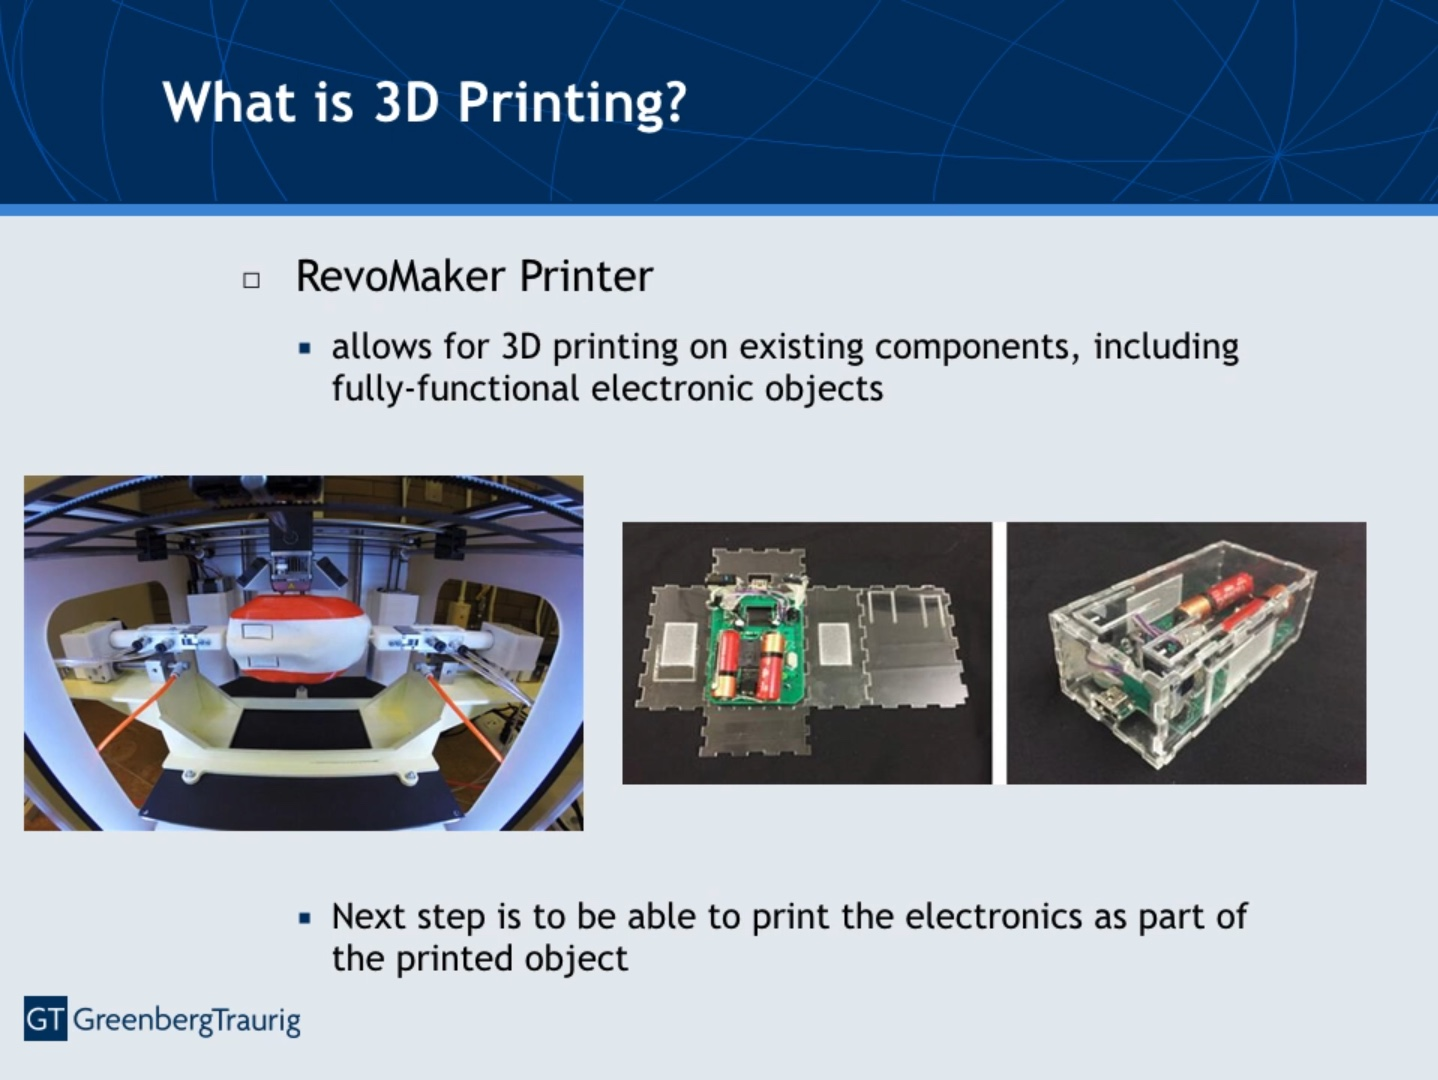 Screenshot from a presentation given to the US Patent and Trademark Office (USPTO) about the future of 3D printing